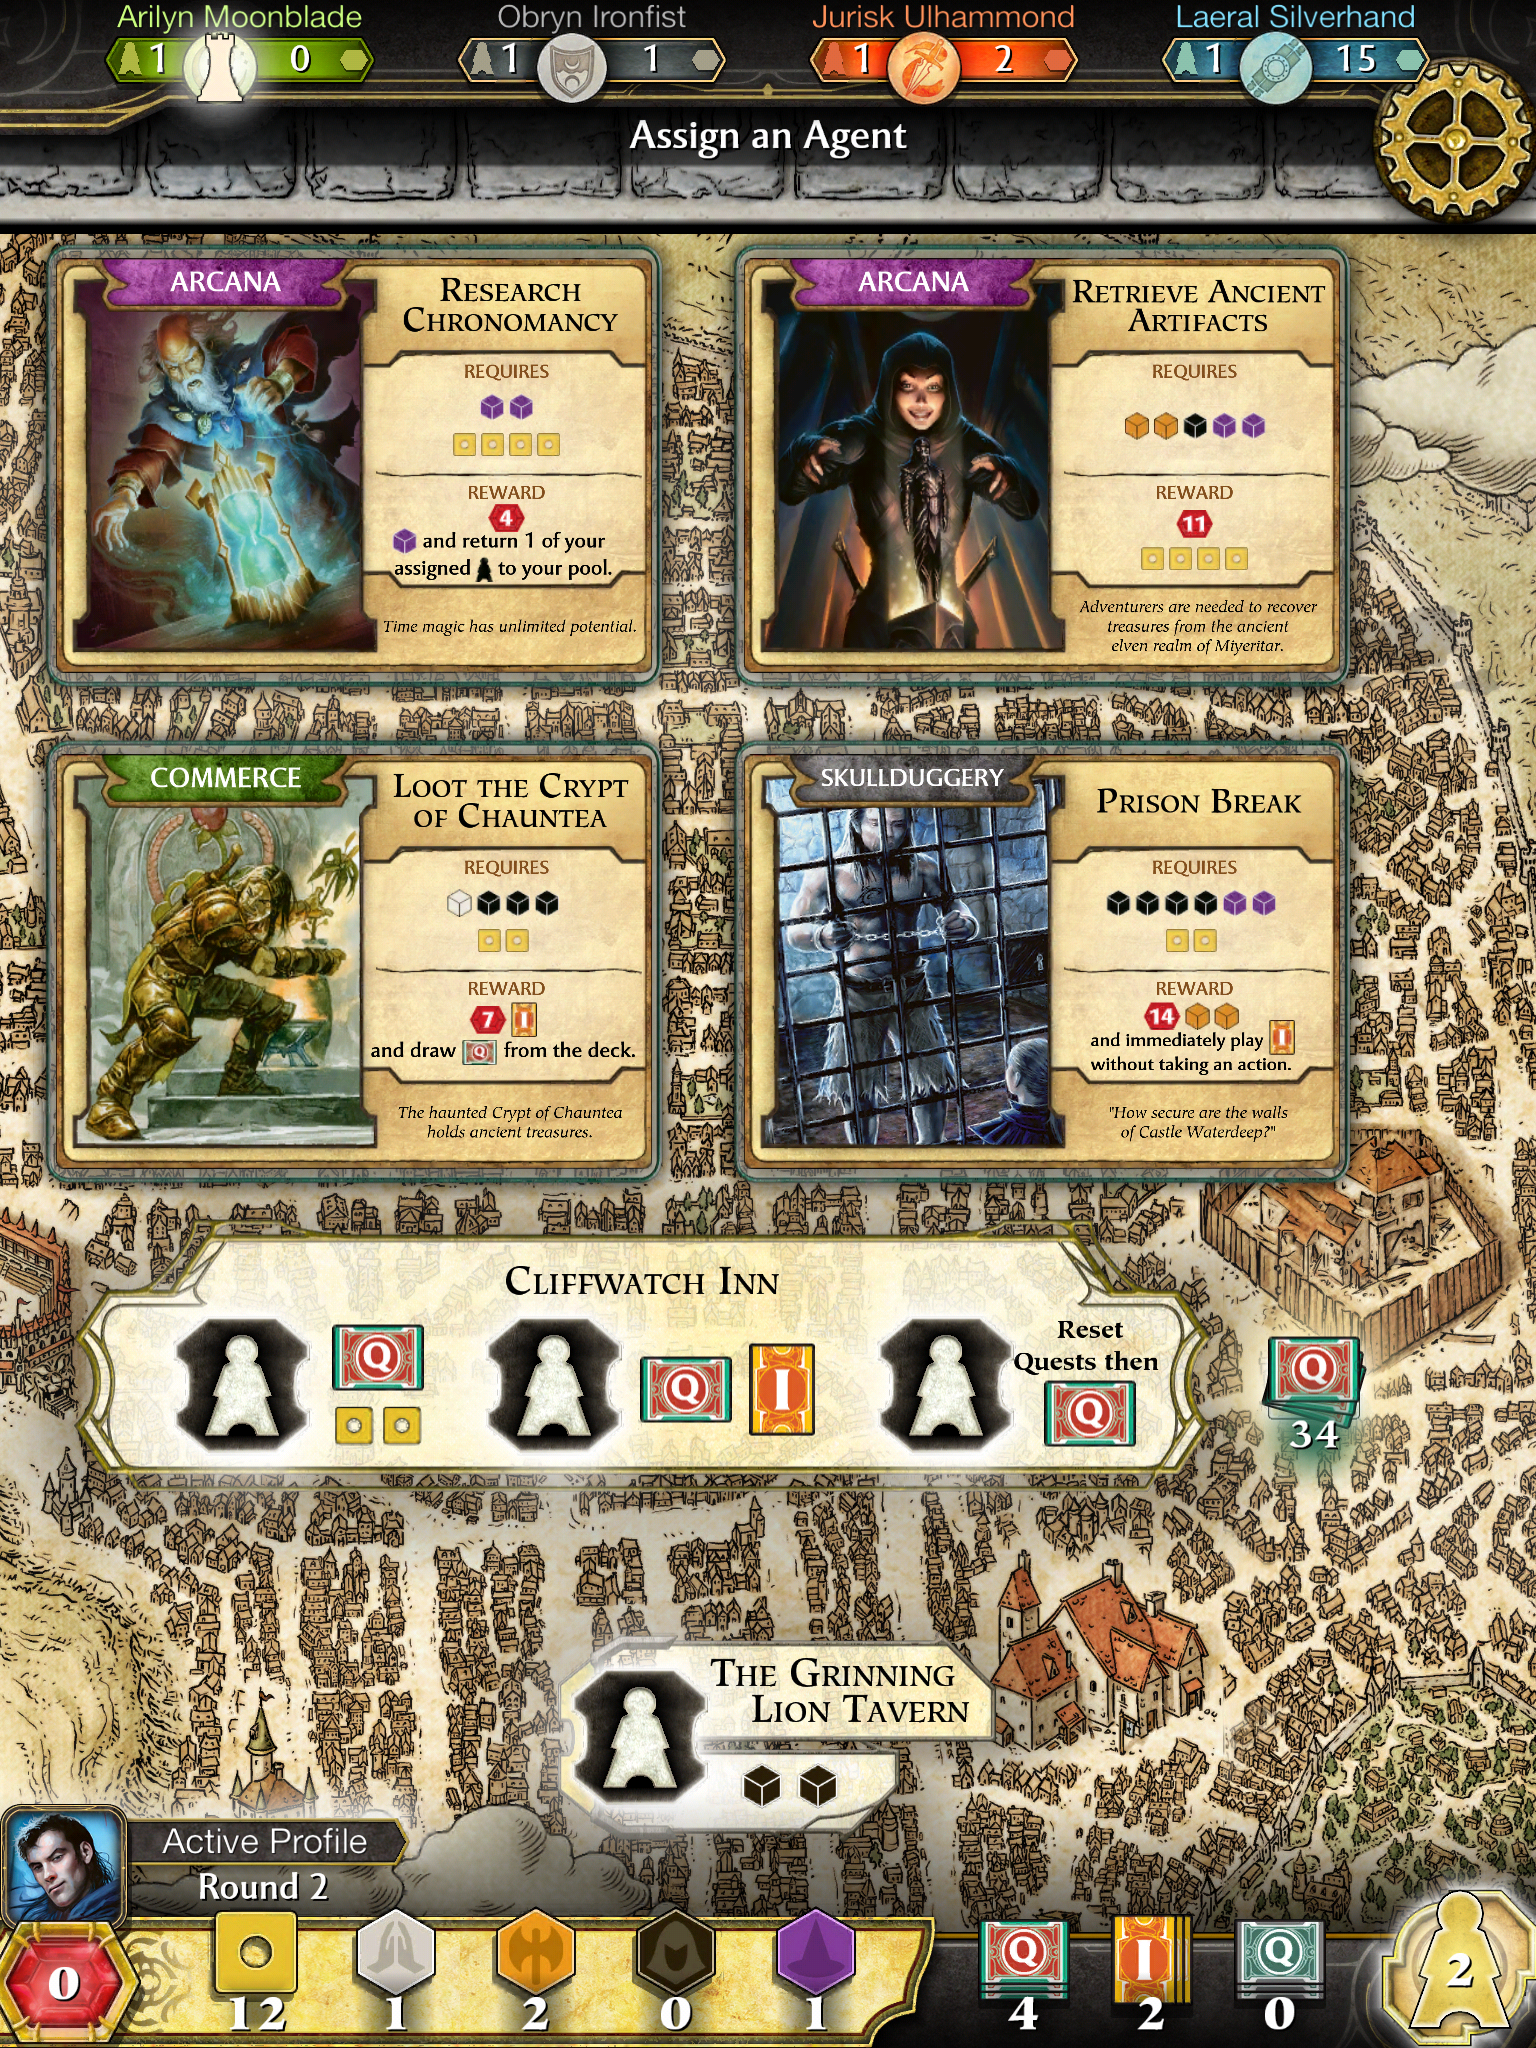 Digital boardgame D&D Lords of Waterdeep is now half price on iOS for a limited time